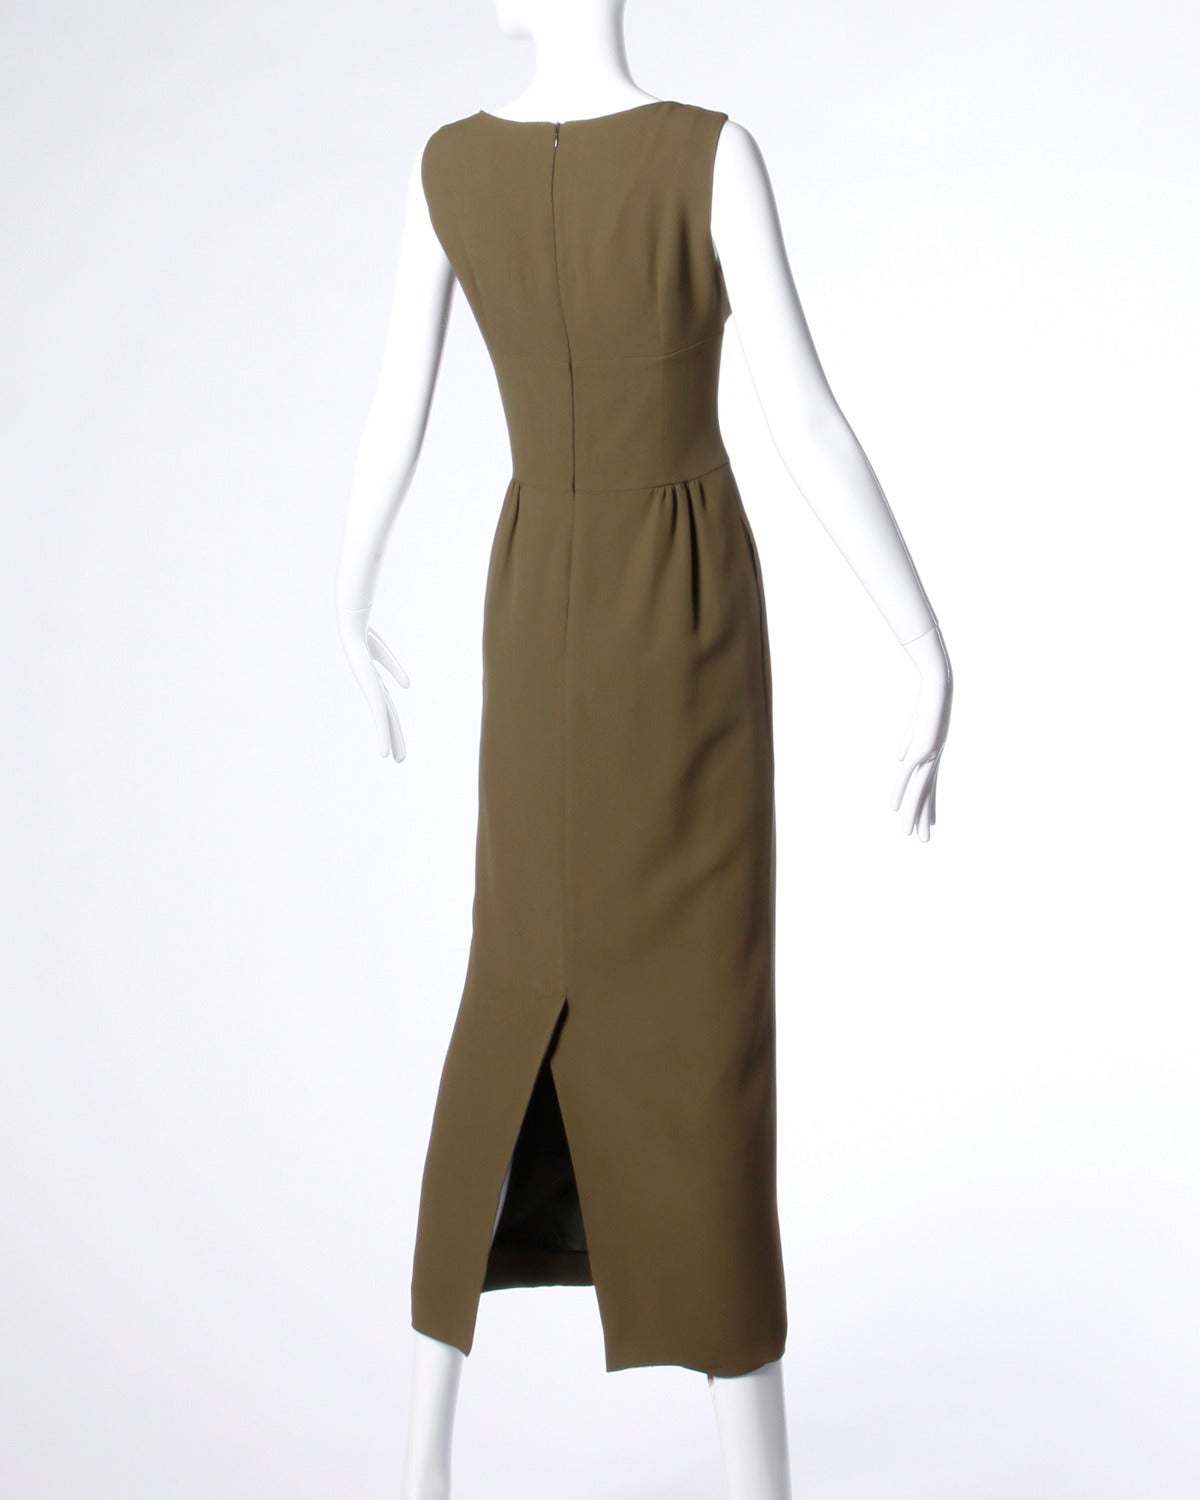 Olive green maxi dress with a high waist and sleeveless sleeves by Moschino.  Details:  Fully Lined Side Pockets Back Zip Closure Estimated Size: M-L Color: Olive Green Fabric: Rayon Blend Label: Cheap & Chic by